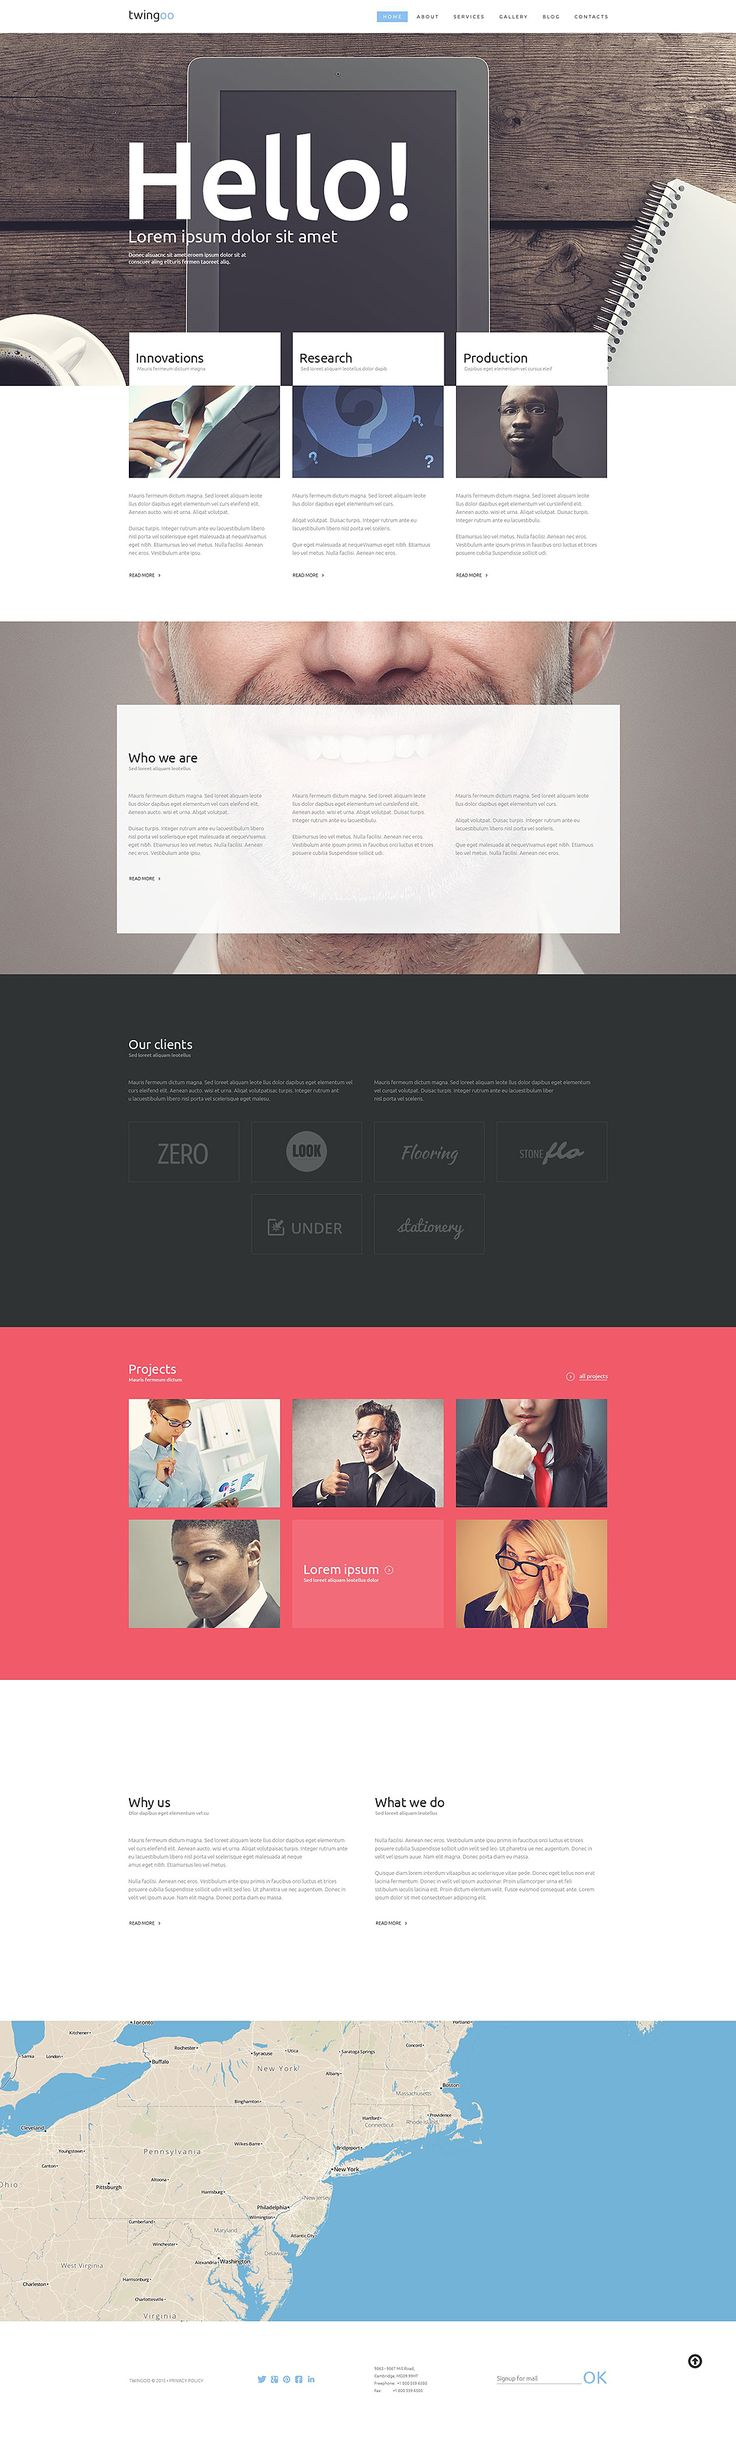 Cool layout introducing content and company